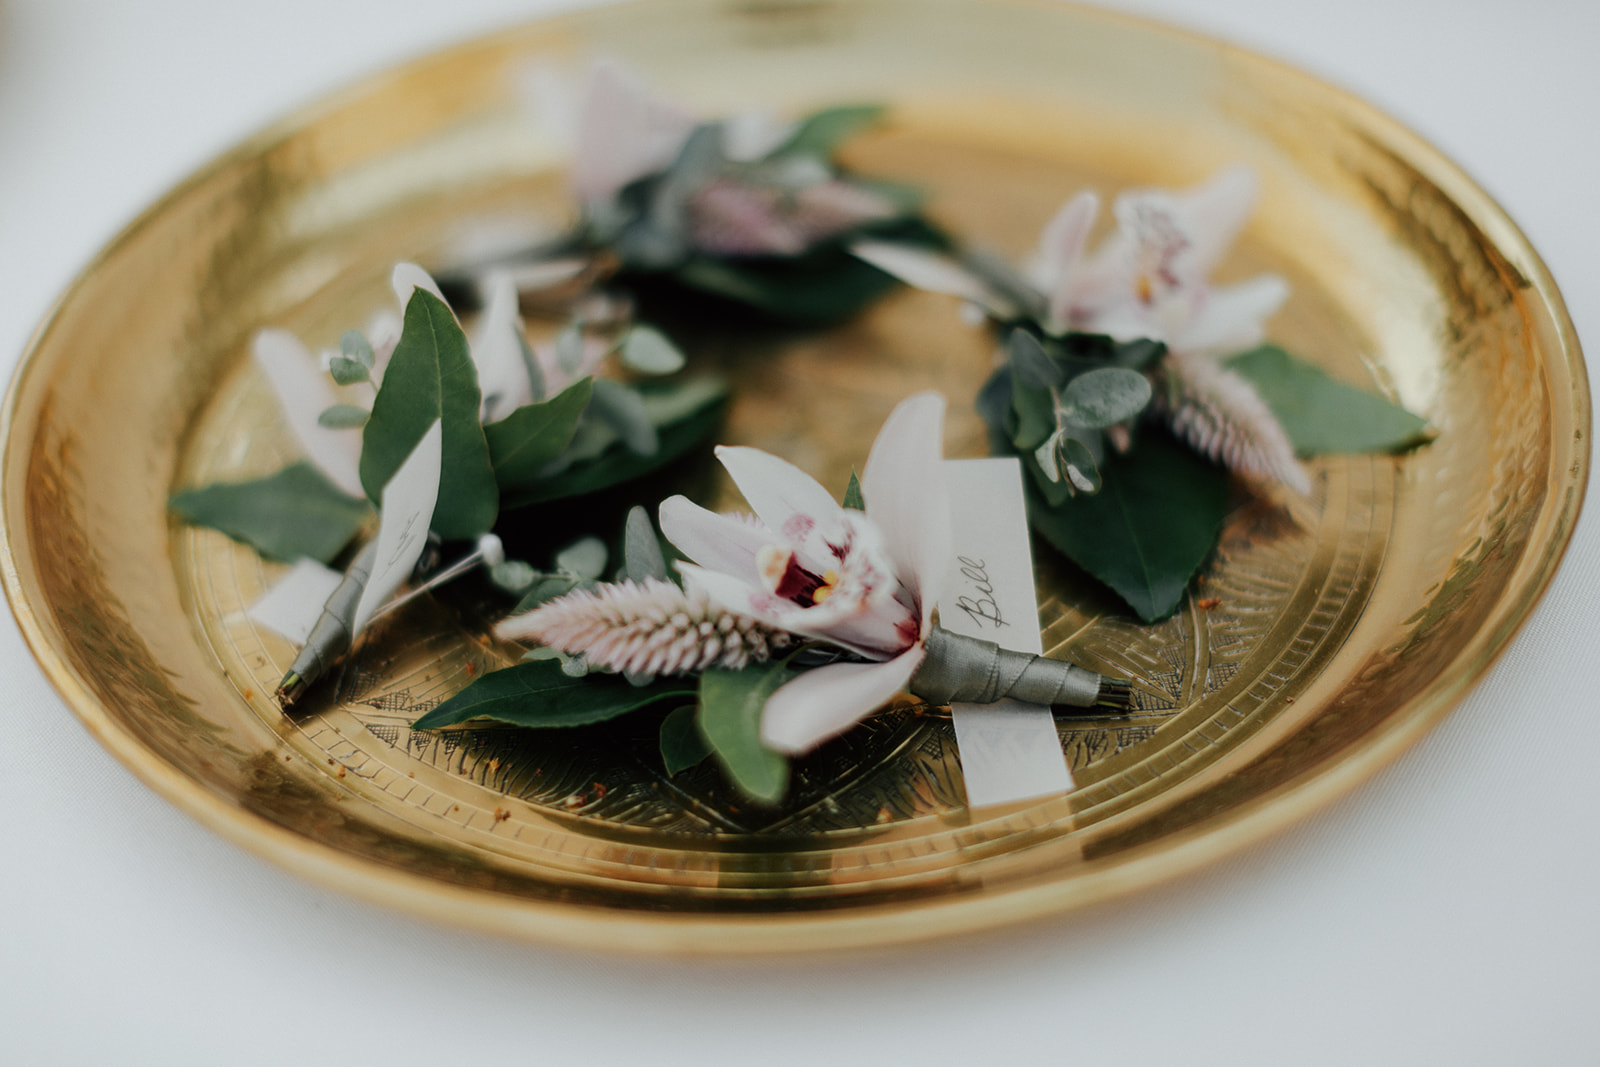 Subtle orchid boutonniere's on gold tray by Venn Floral at Ru's Farm in Healdsburg photographed by Logan Cole.